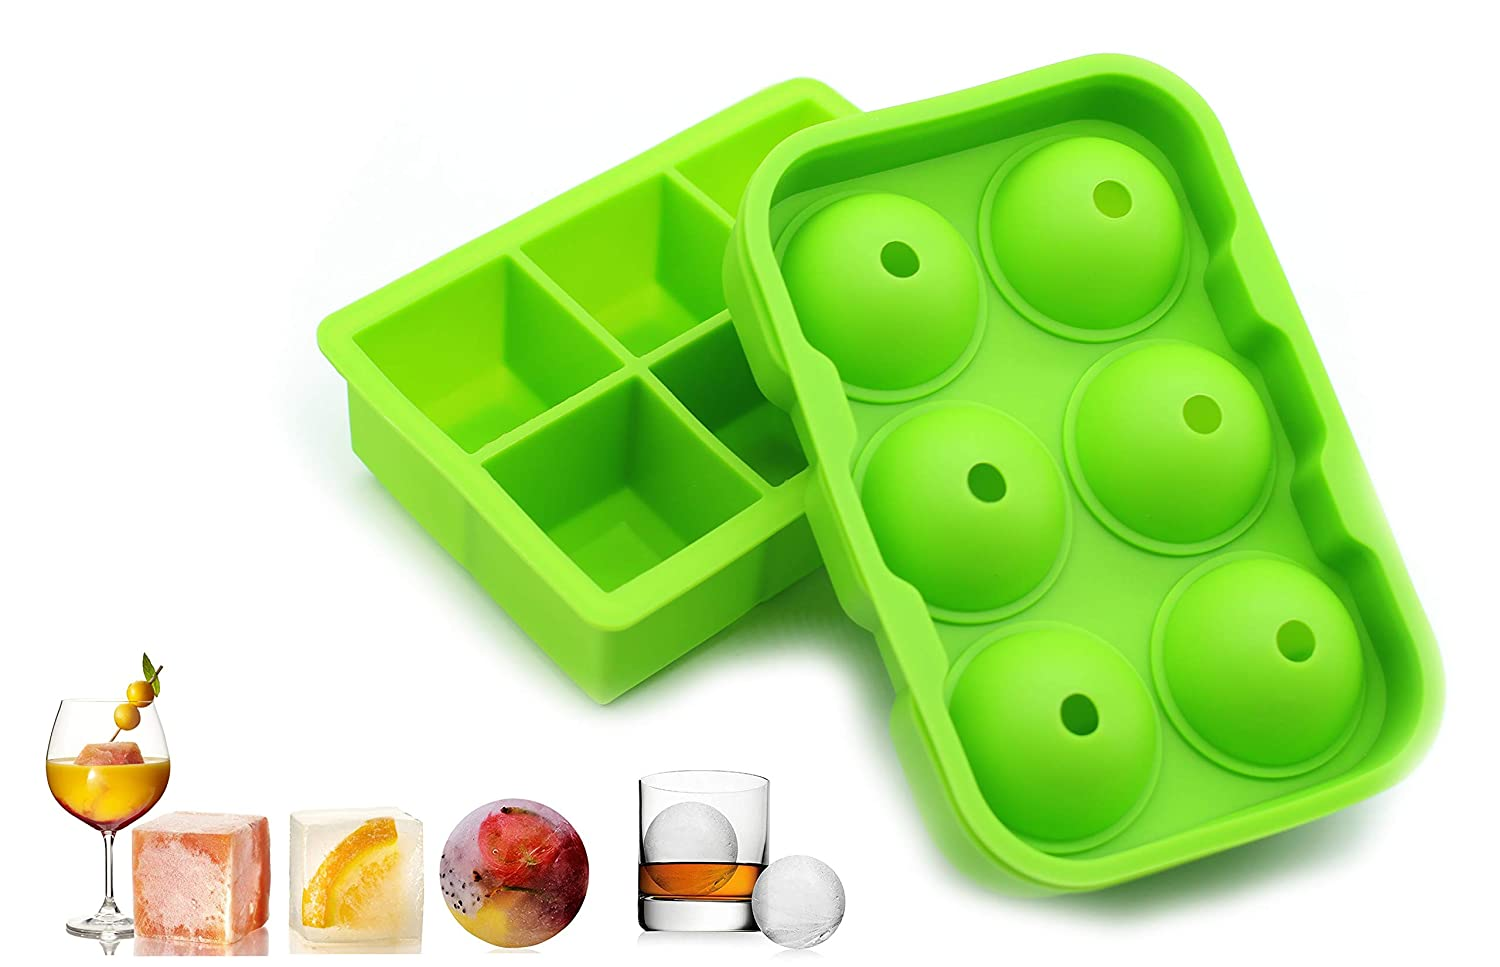 2 Pack Large Silicone Ice Cube Trays Molds, Square and Round Ball Ice Maker, Flexible Easy Release Stackable BPA-Free FDA-Approved Dishwasher Safe Ice Mold for Whiskey Cocktail Beverages Chilled Drink